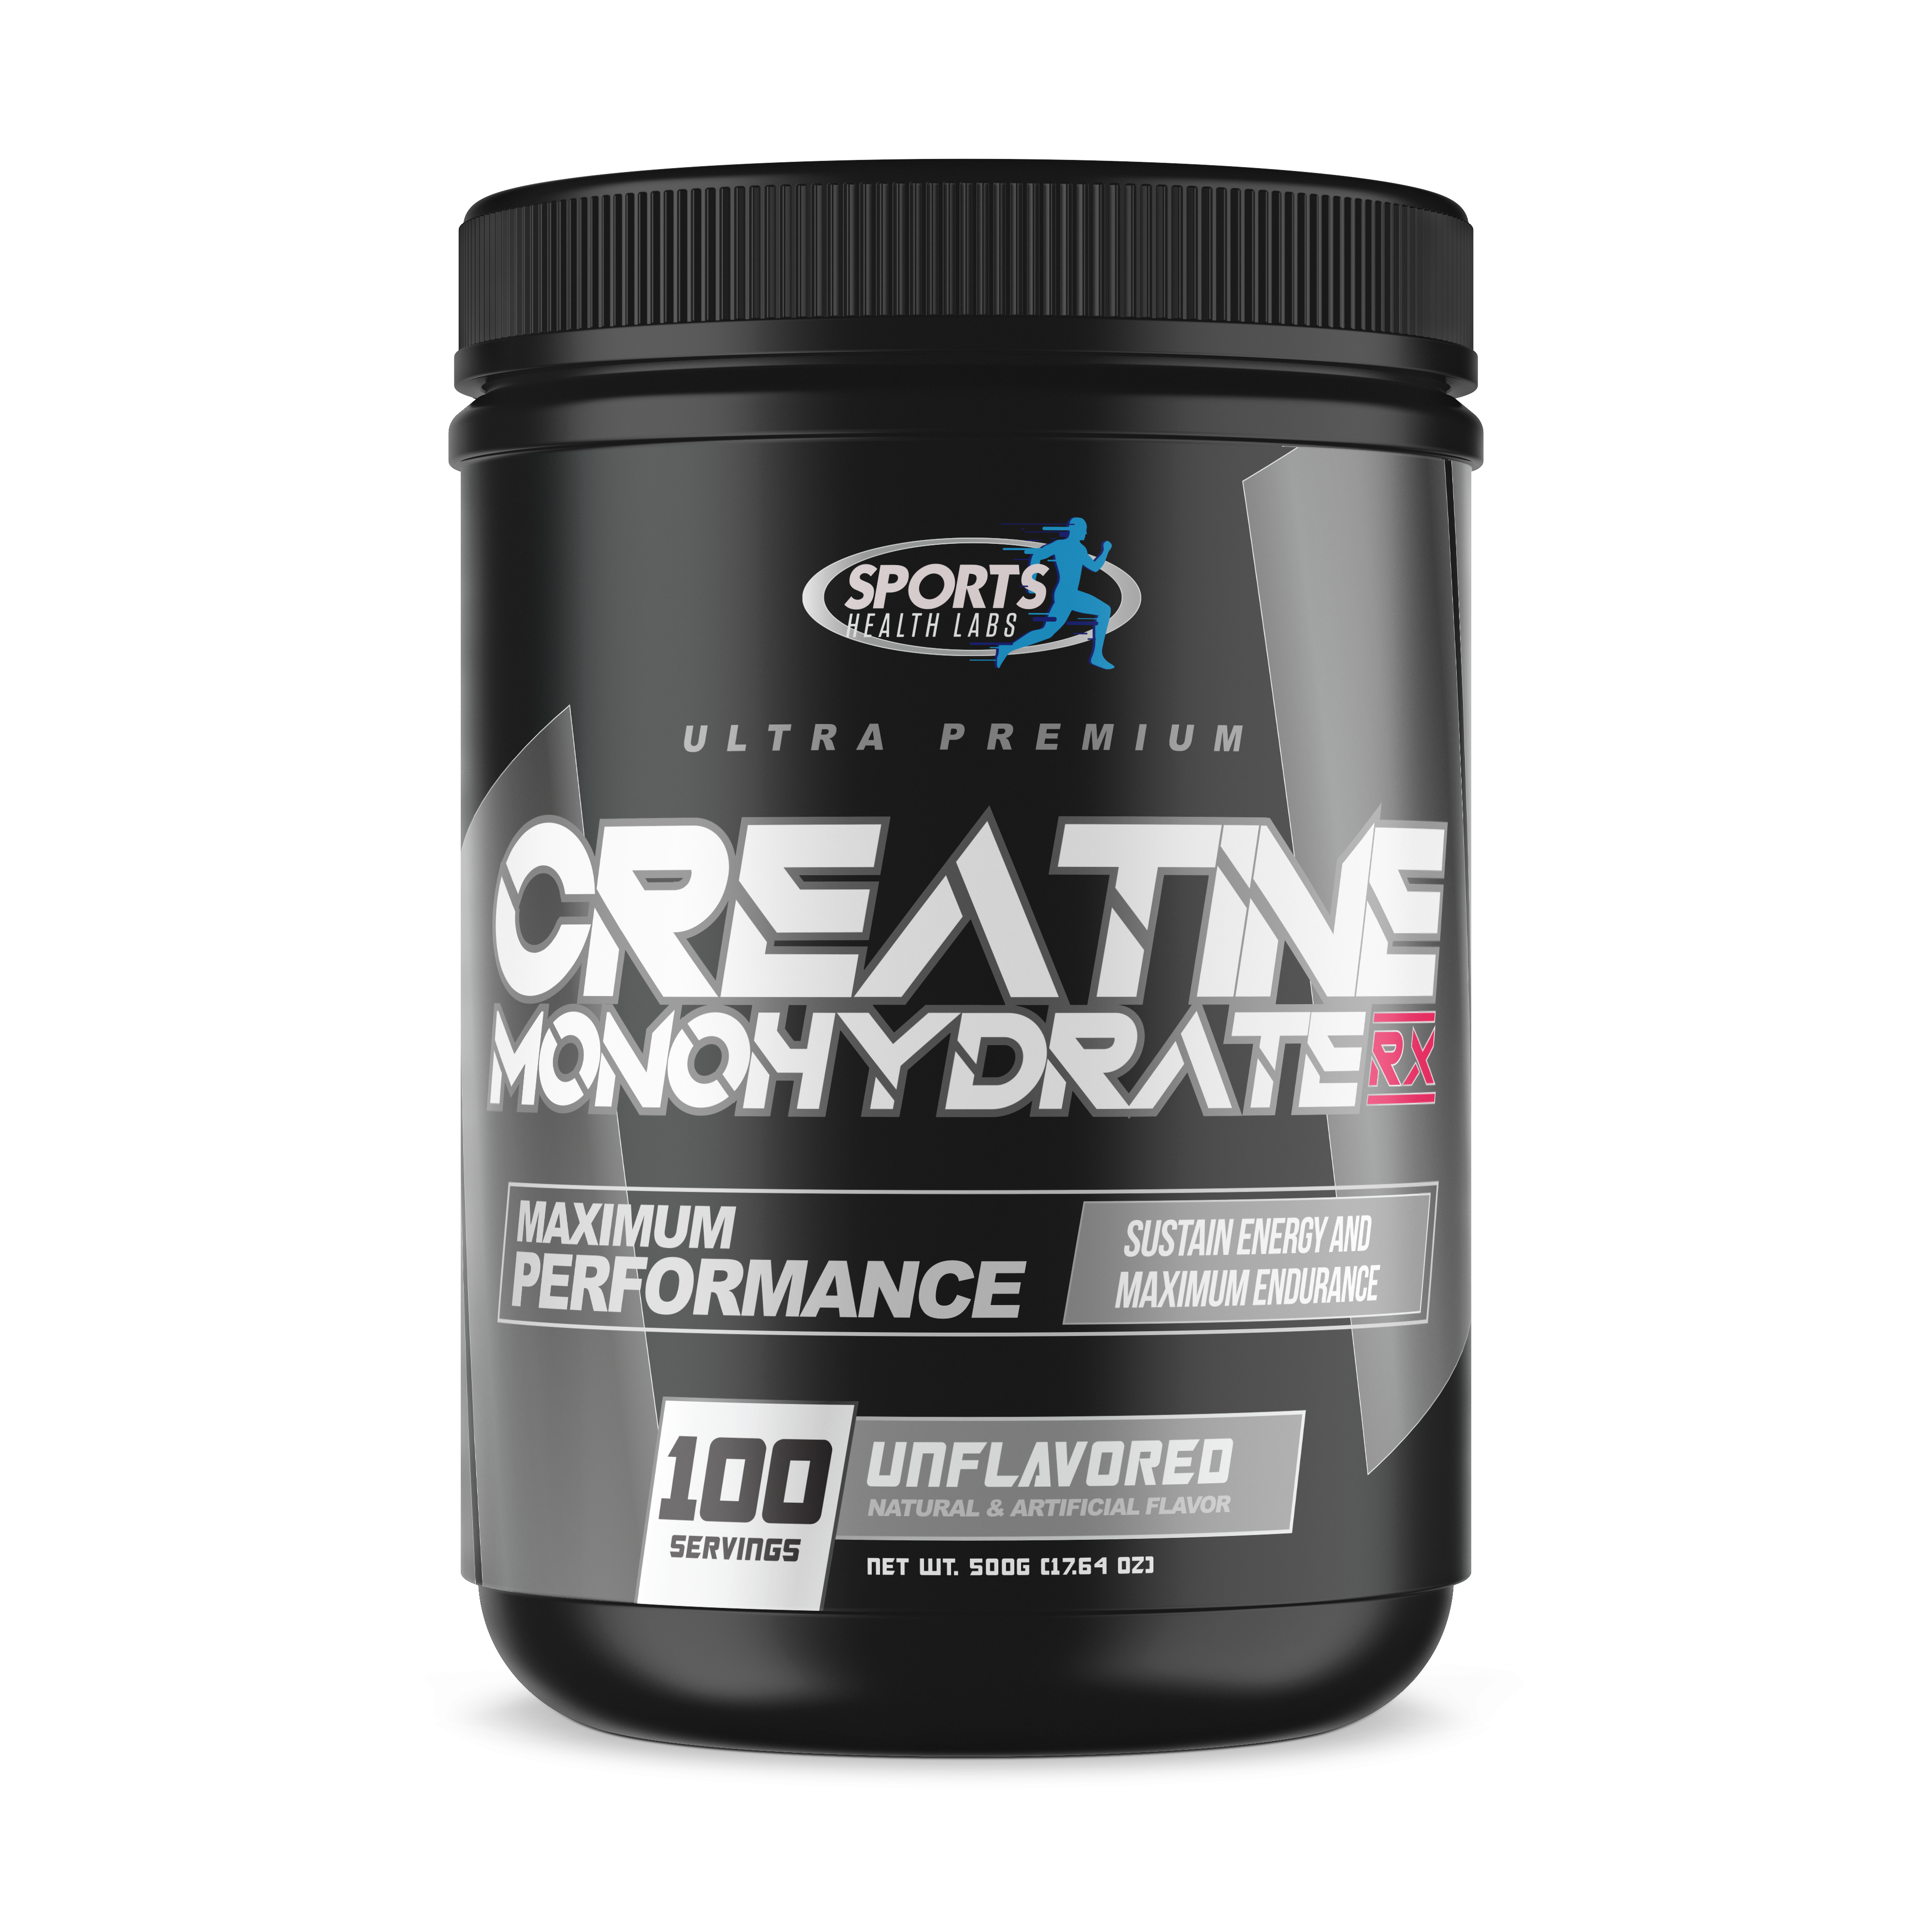 Creatine Monohydrate - Sports Health Labs